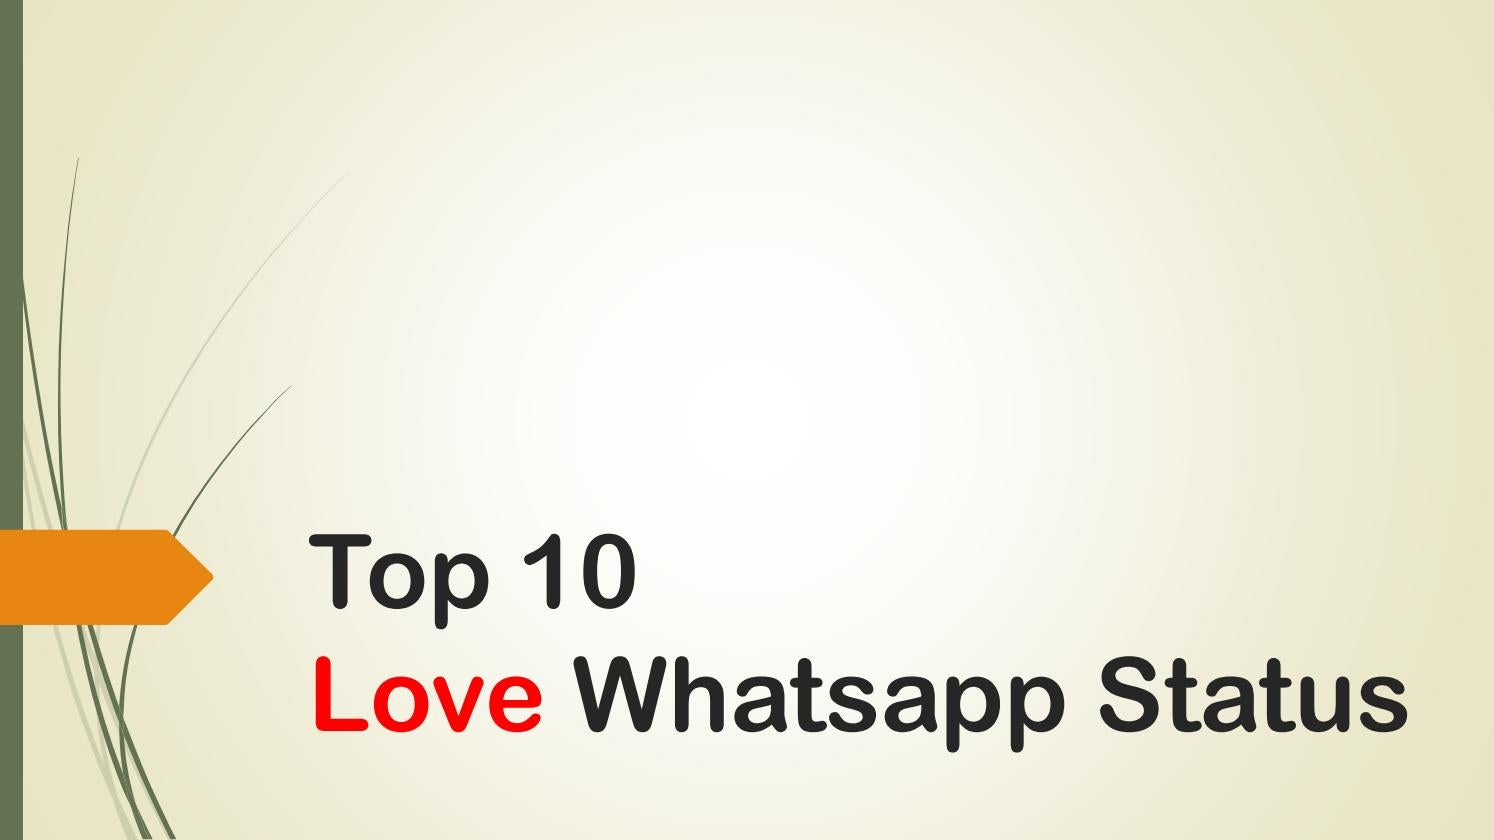 Top 10 Love Whatsapp Status By Status Collection Issuu